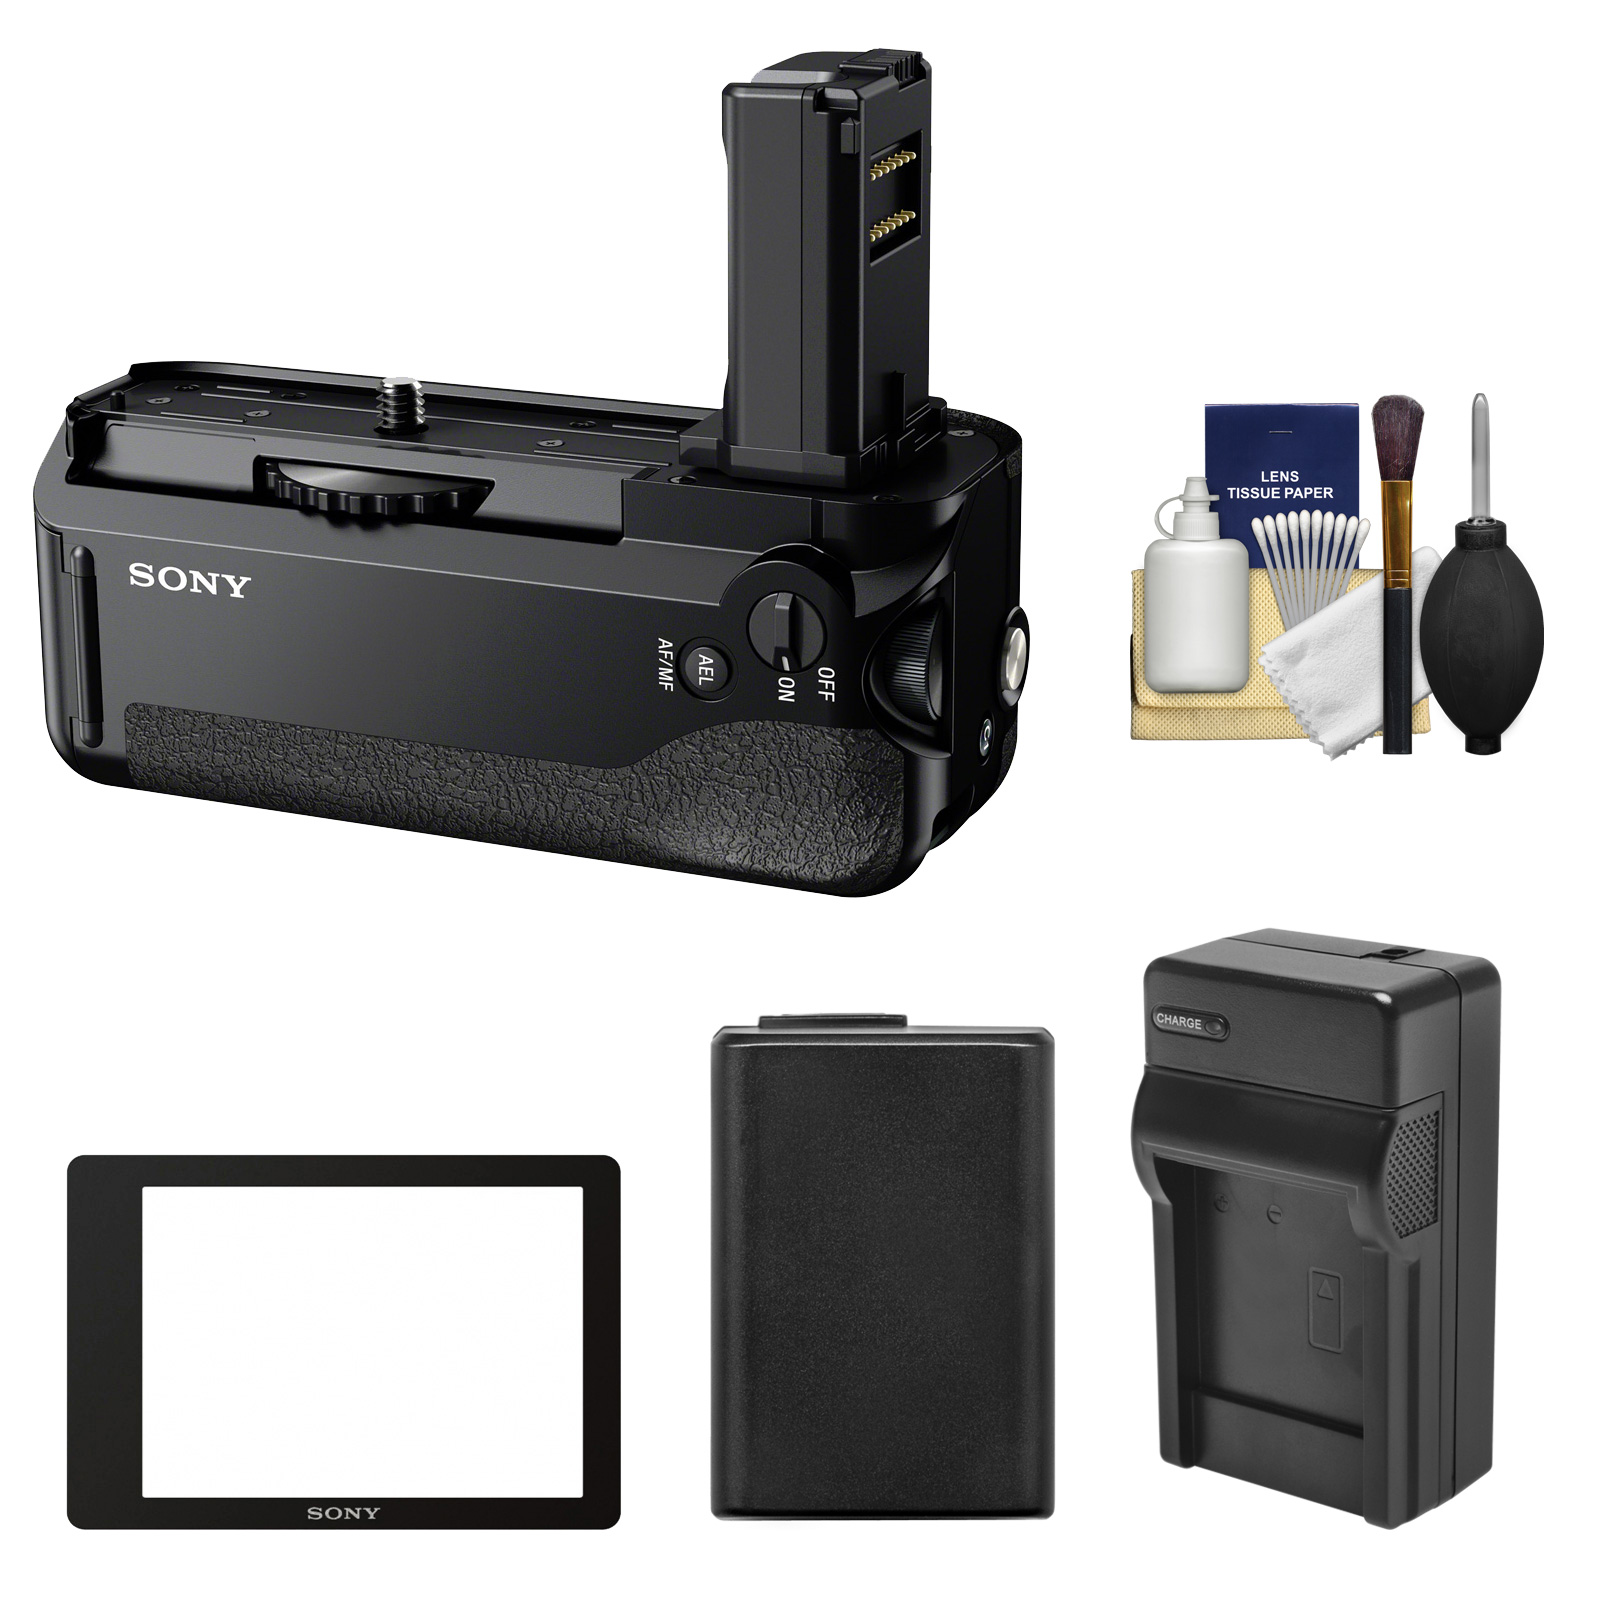 Sony VG-C1EM Vertical Battery Grip with PCK-LM16 Semi-Hard LCD Screen Protector + Battery & Charger Kit for Alpha A7, A7R & A7S Camera